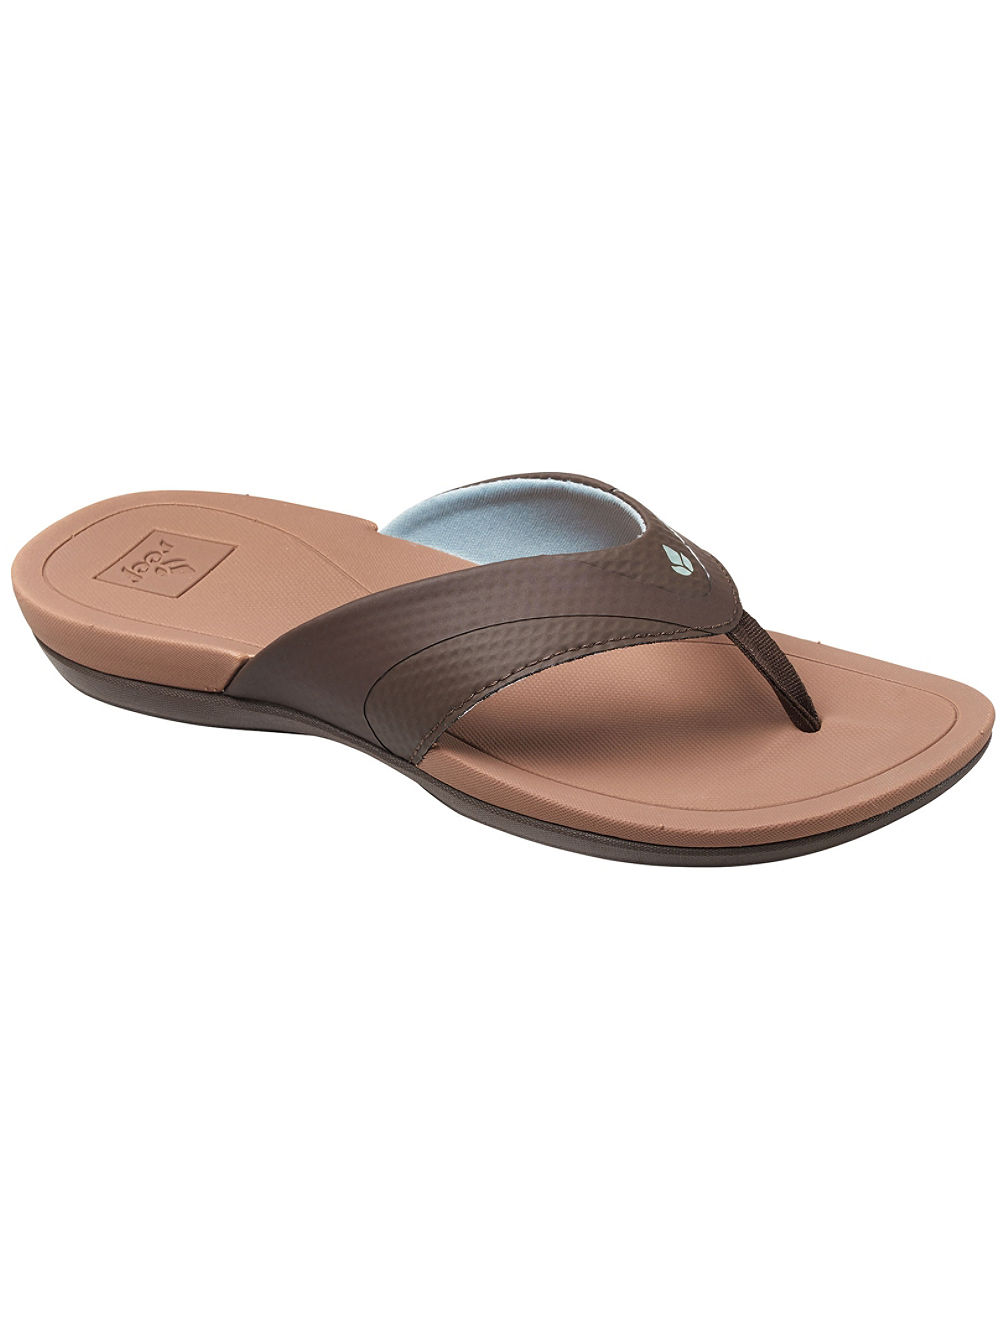 910e69bc7374 Buy Reef Energy II Sandals online at Blue Tomato